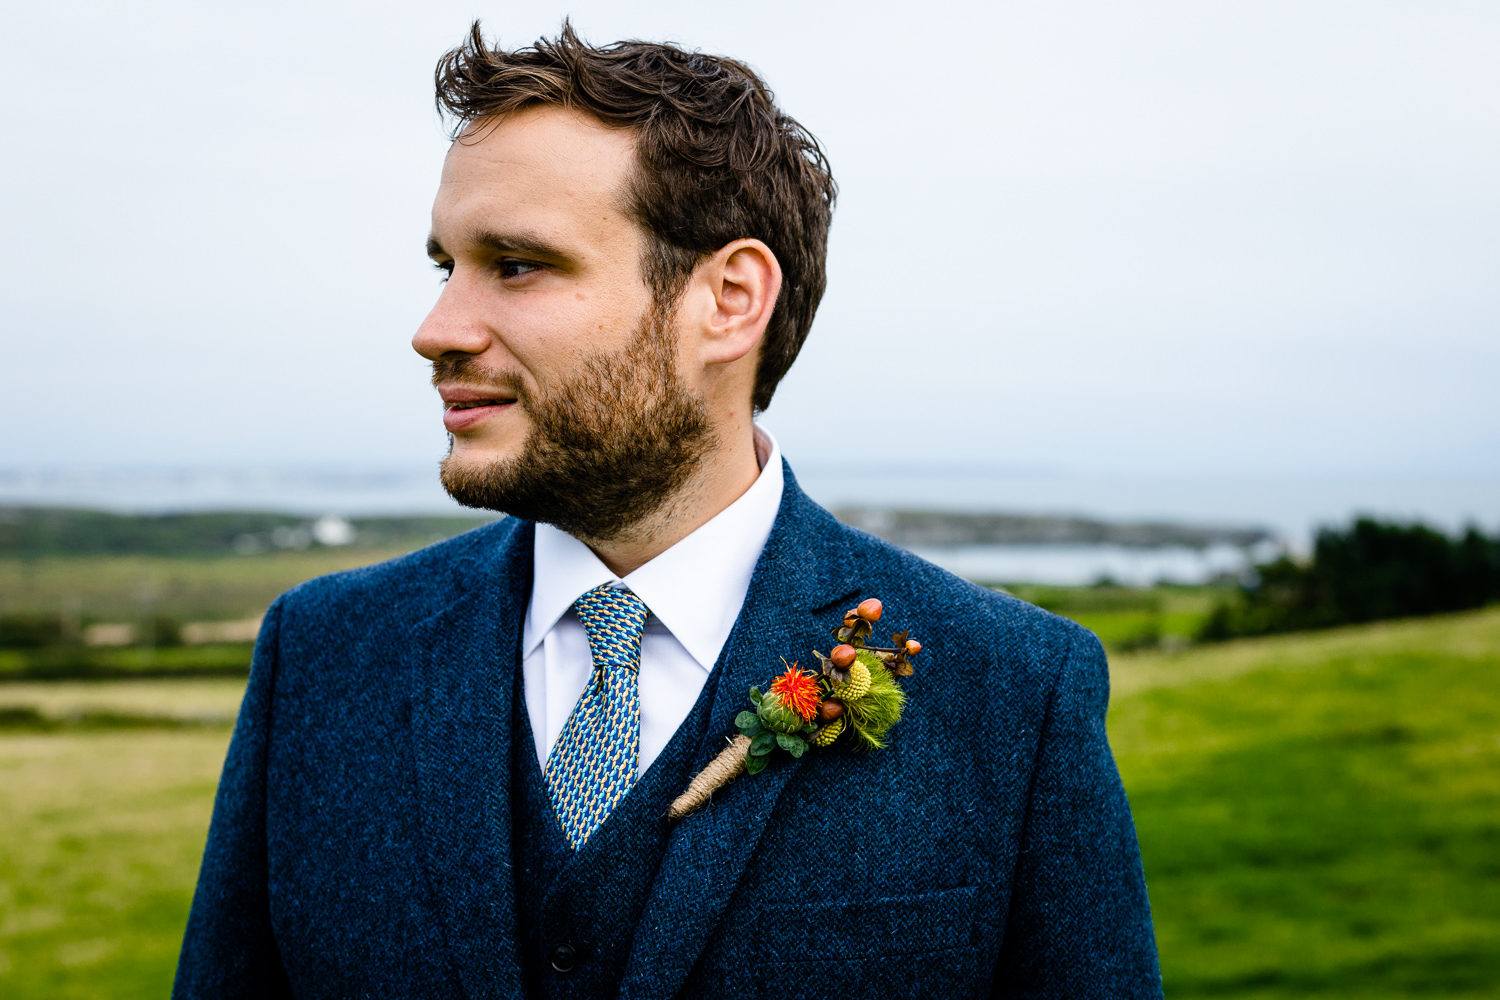 Stef-Simon-Anglesey-wedding-photogrpher-110.jpg